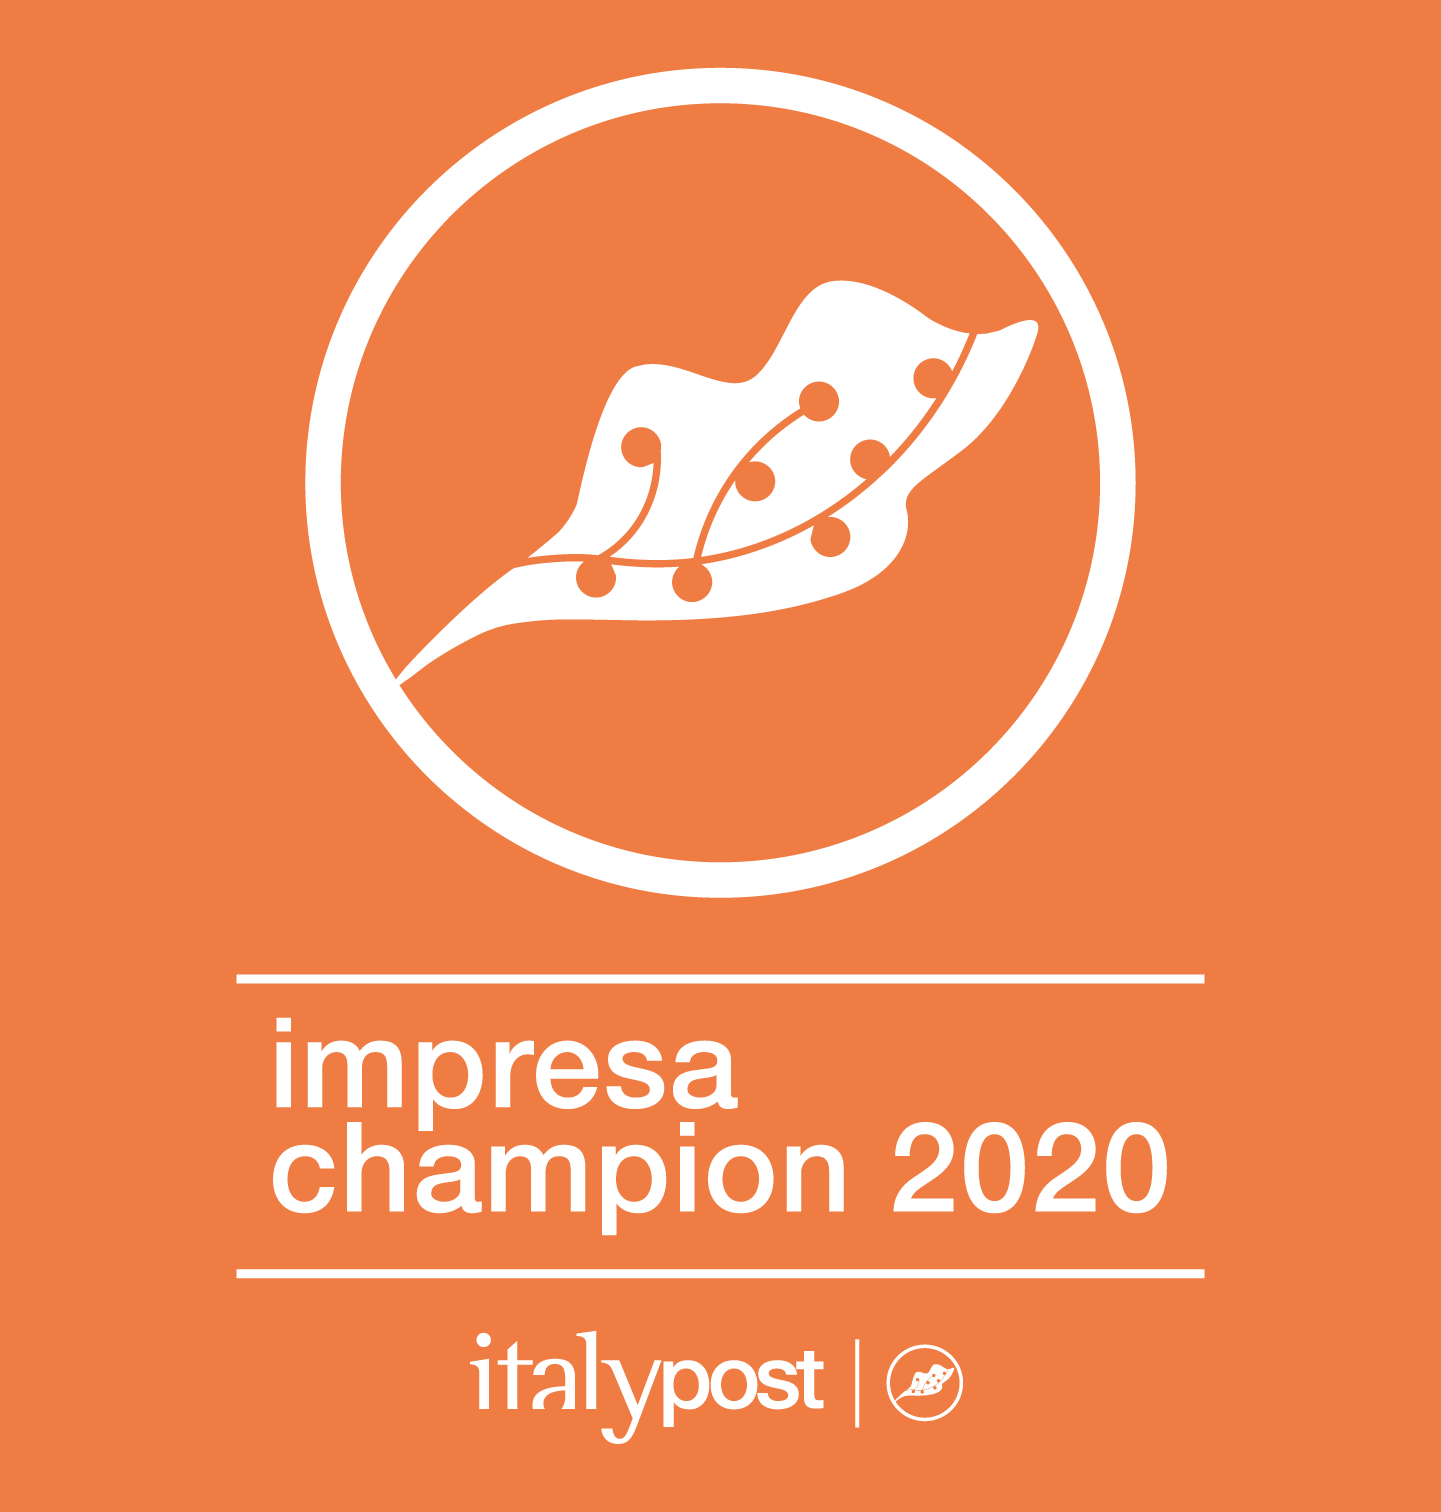 Guerriero tra le 1.000 imprese Champion 2020